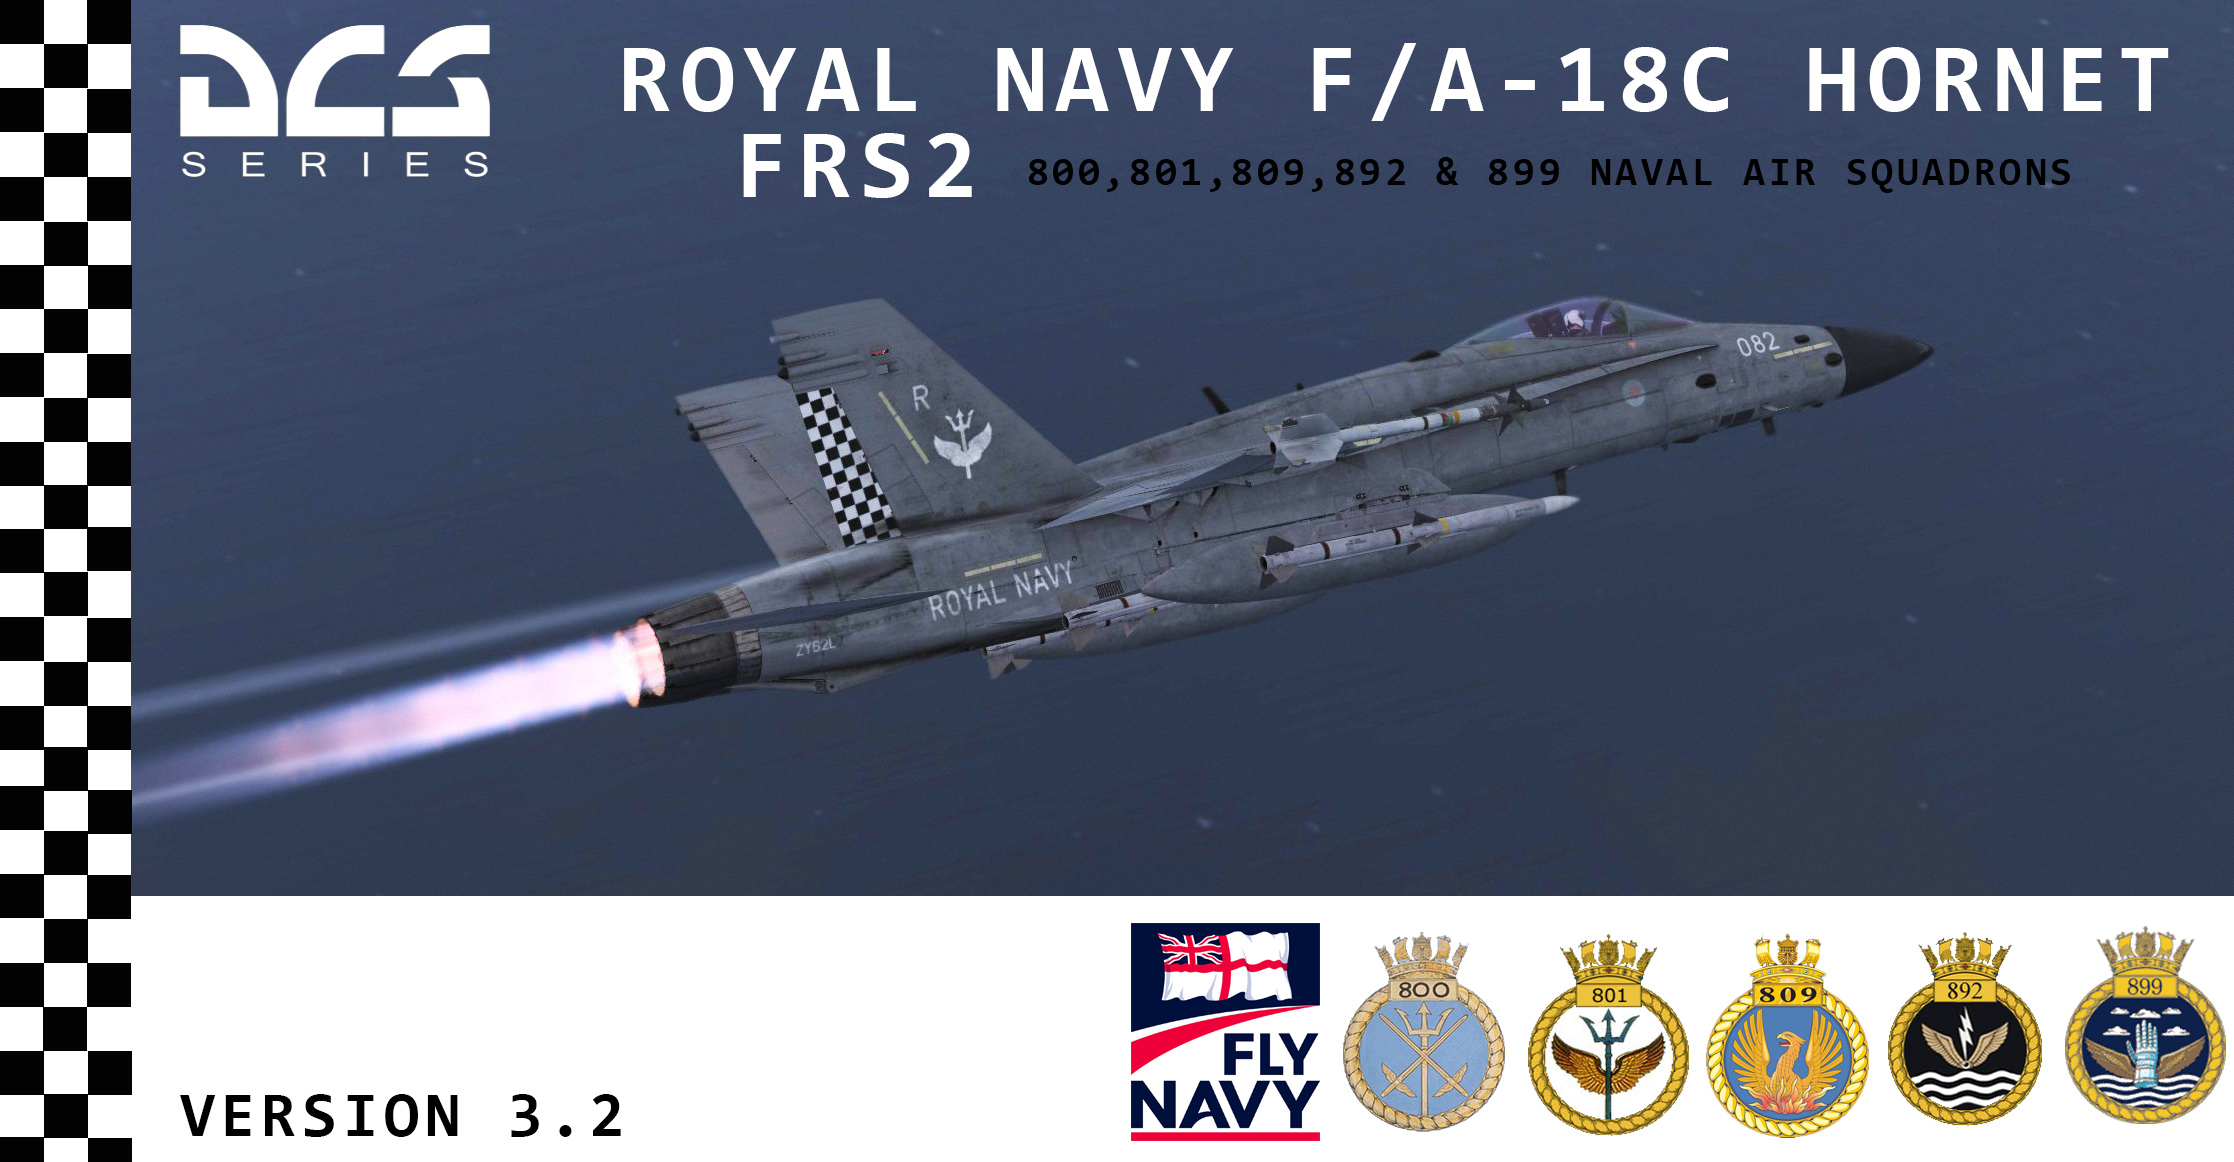 Royal Navy F/A-18C Hornet FRS2 Fictional Fleet Air Arm Skins - 800, 801,809,892 & 899 NAS | Version 3.3